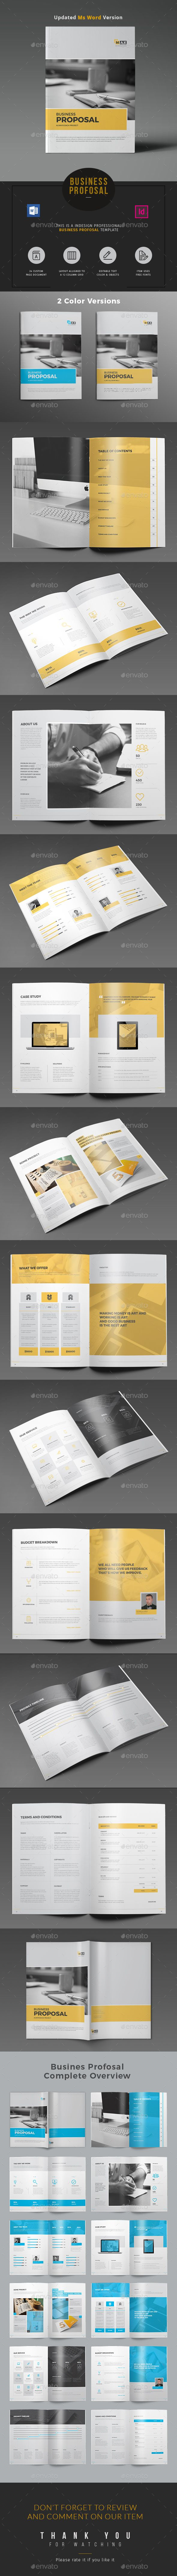 Proposal Word Proposal Template is designed in Adobe InDesign & MS Word. All text, Charts and Tables are fully layered and organized so that you can find out layers easily and change whatever you want. This template design will save your time and effort as well.